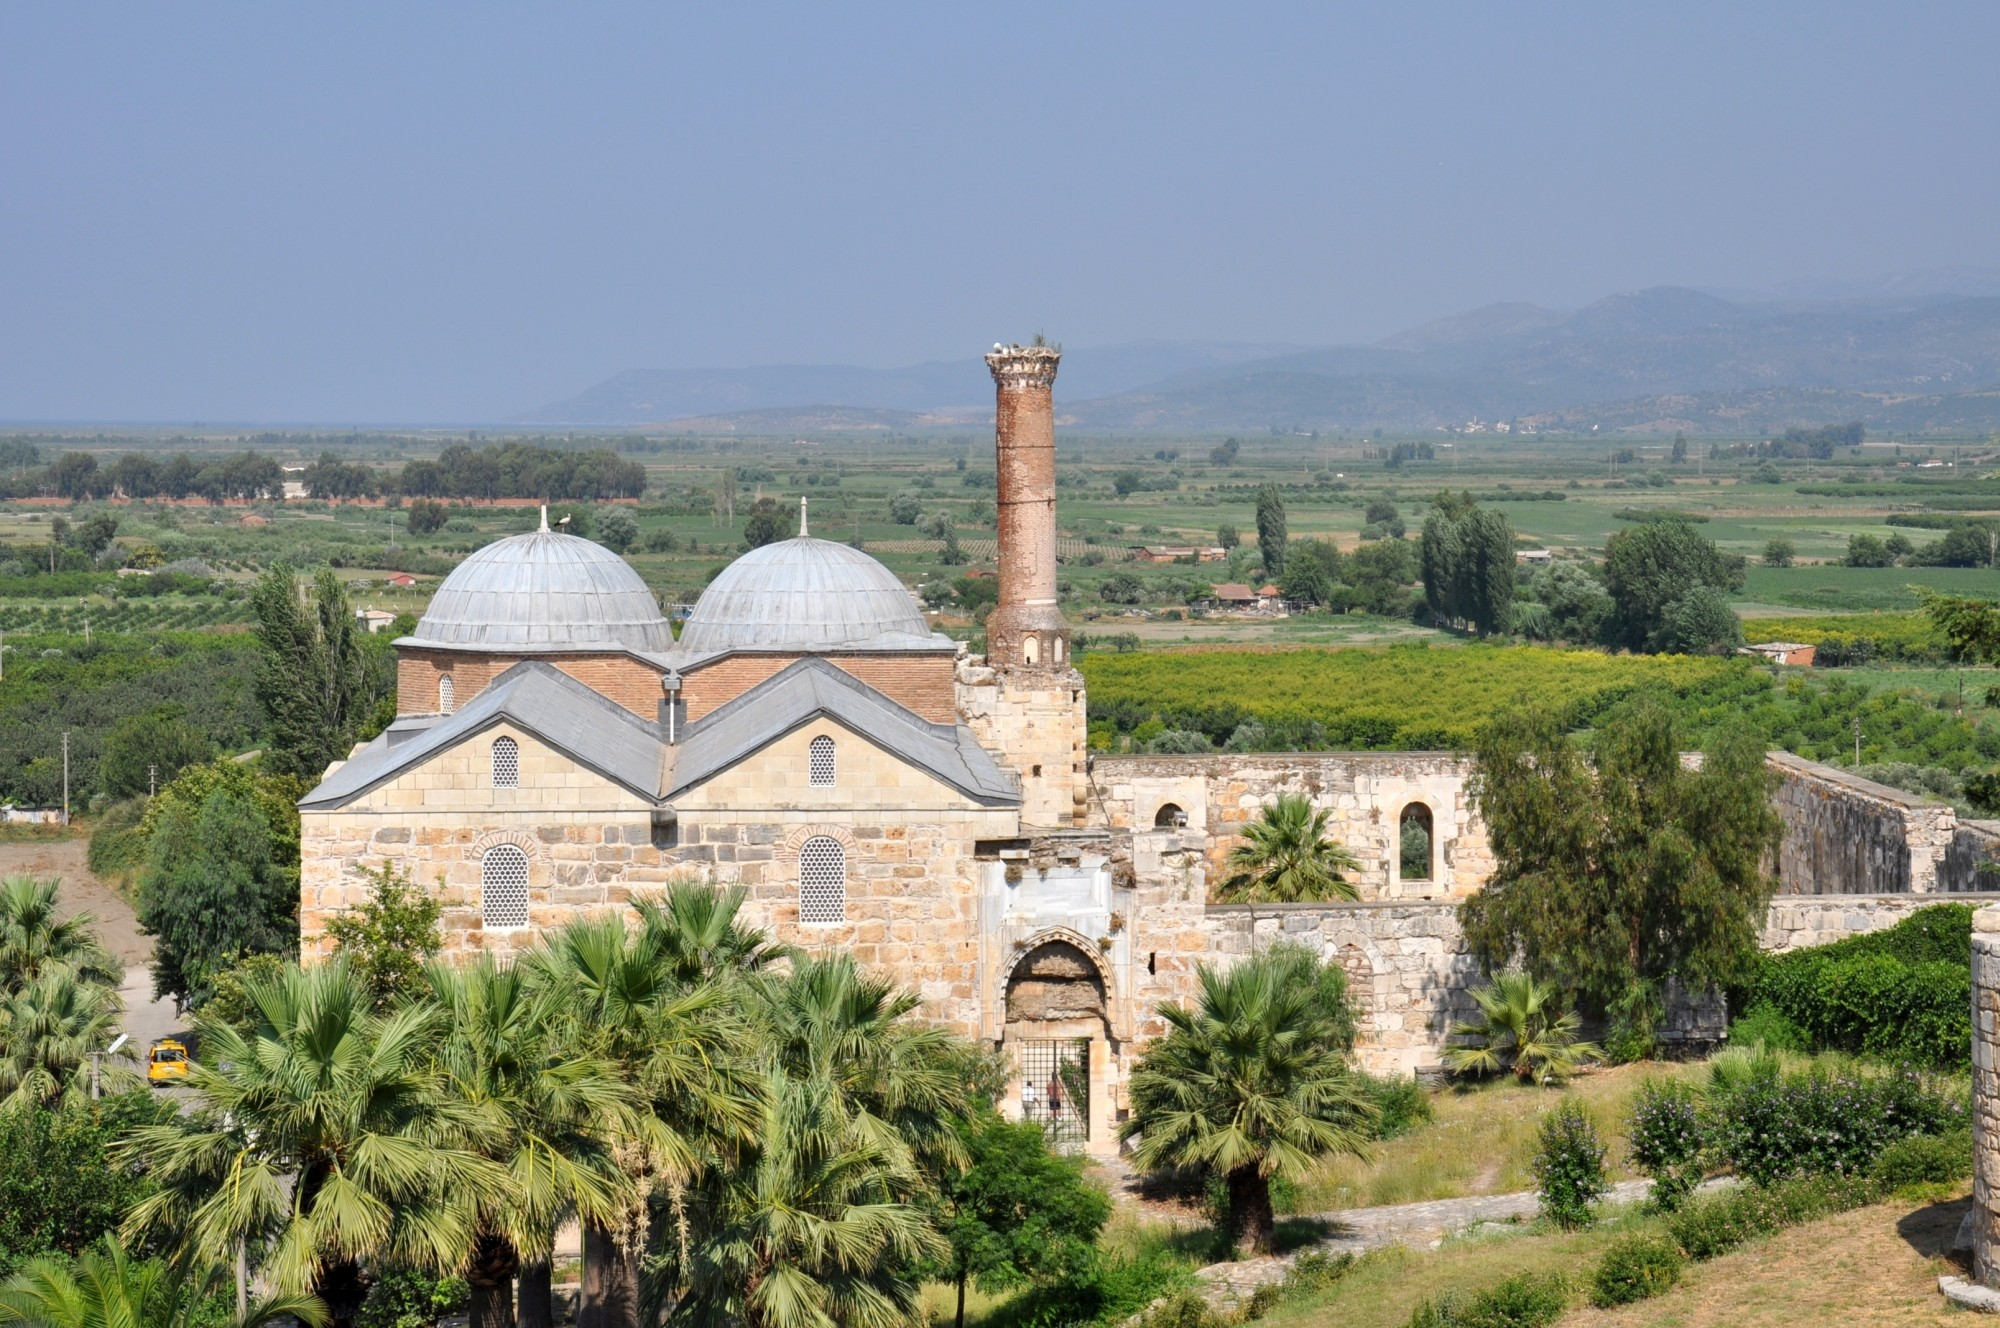 İsa Bey Mosque in Selçuk